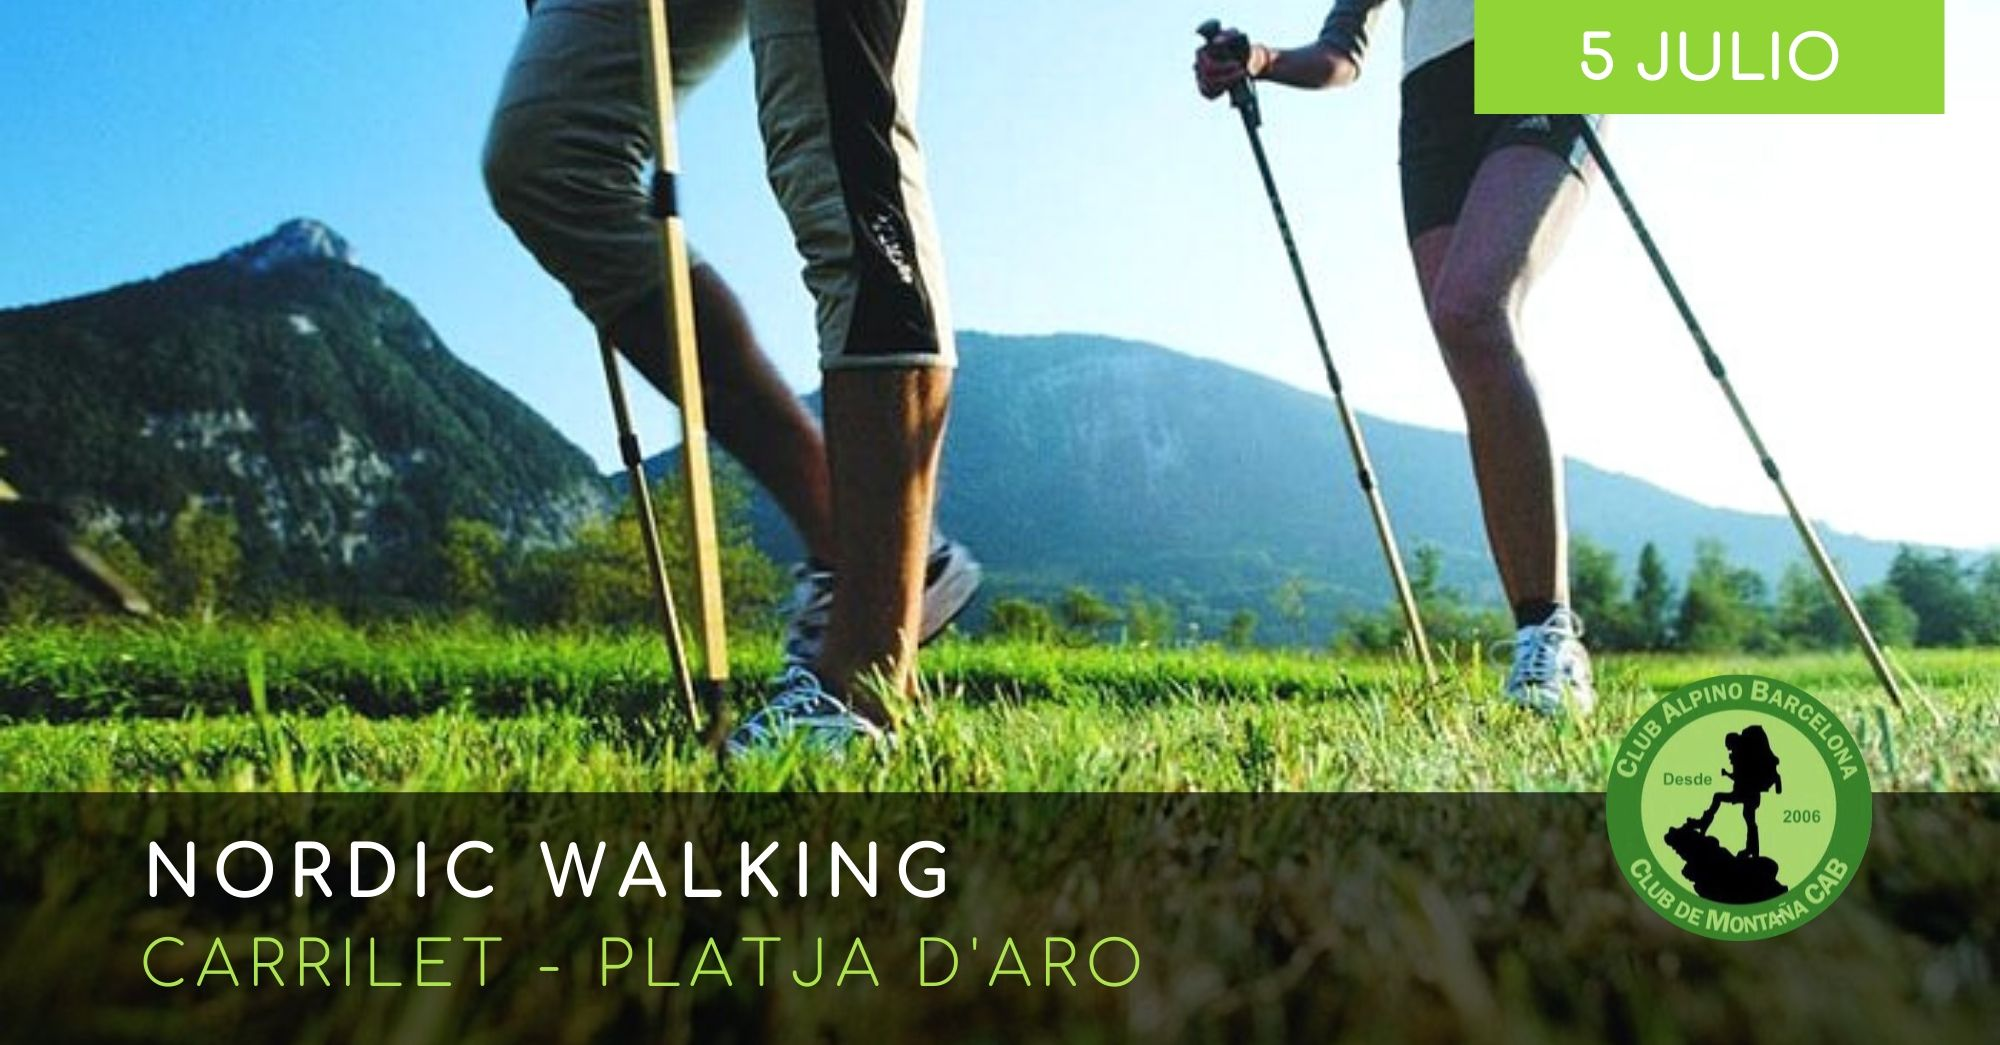 carrilet platja d'aro Nordic Walking